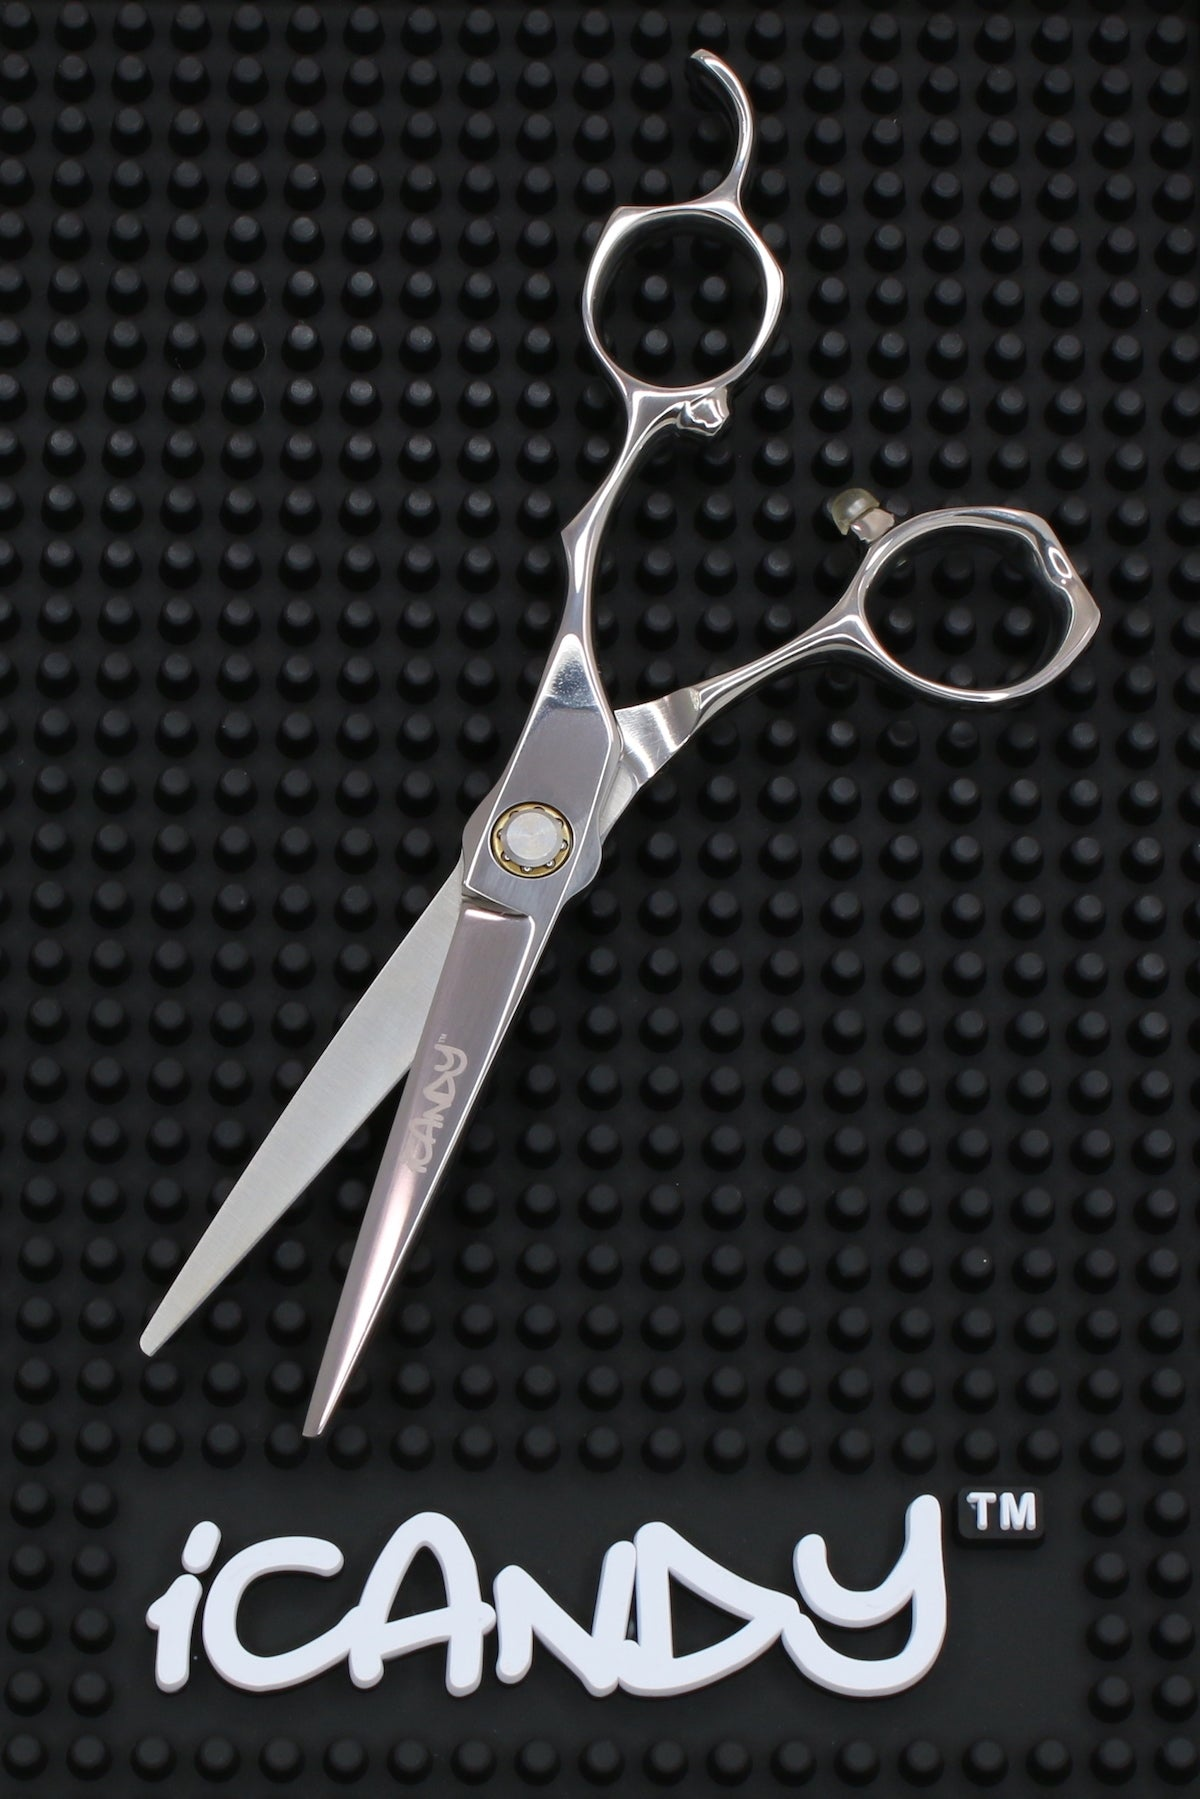 iCandy EXPERT VG10 Scissors (6.0 inch) - iCandy Scissors